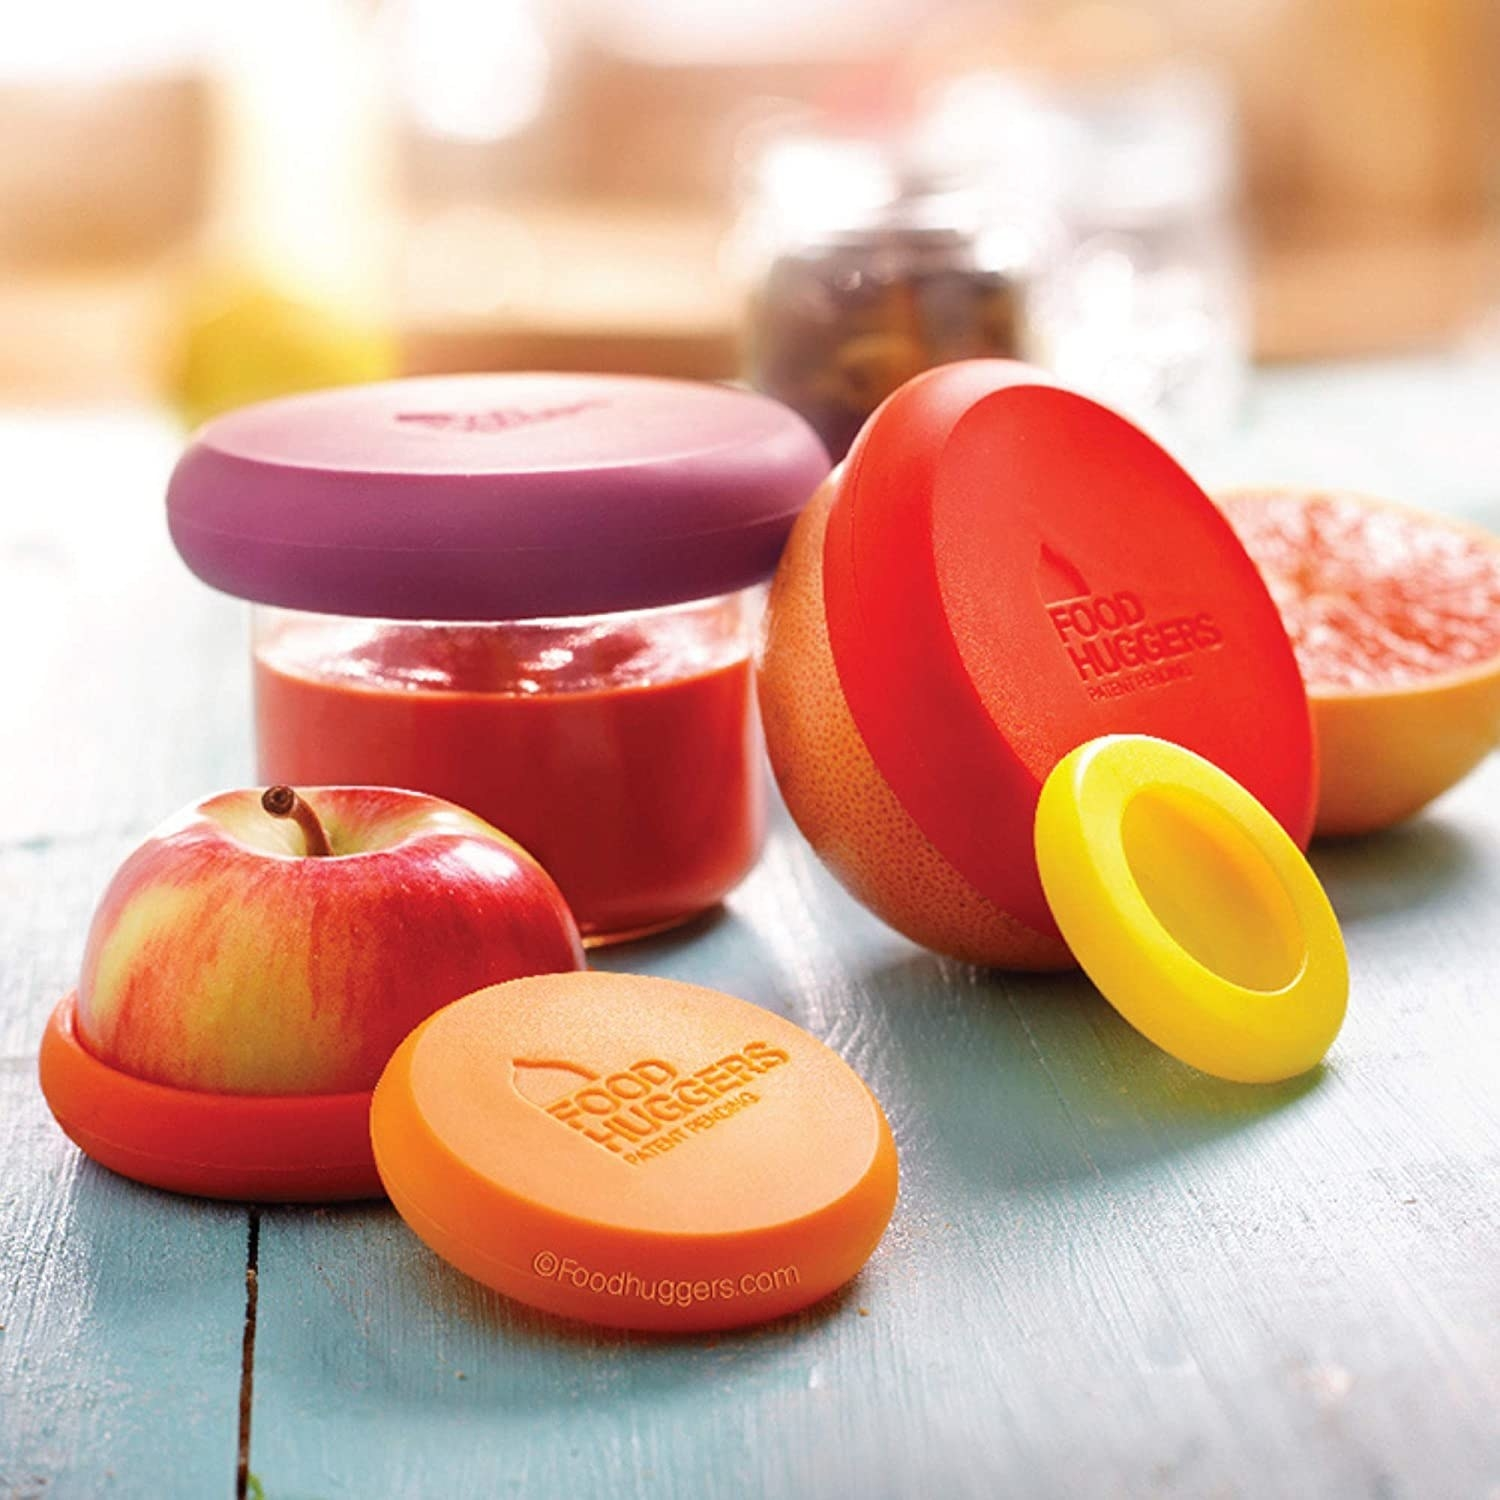 Five food huggers in shades of red and orange with one around a half an apple, one around an orange, and one on a cup of sauce